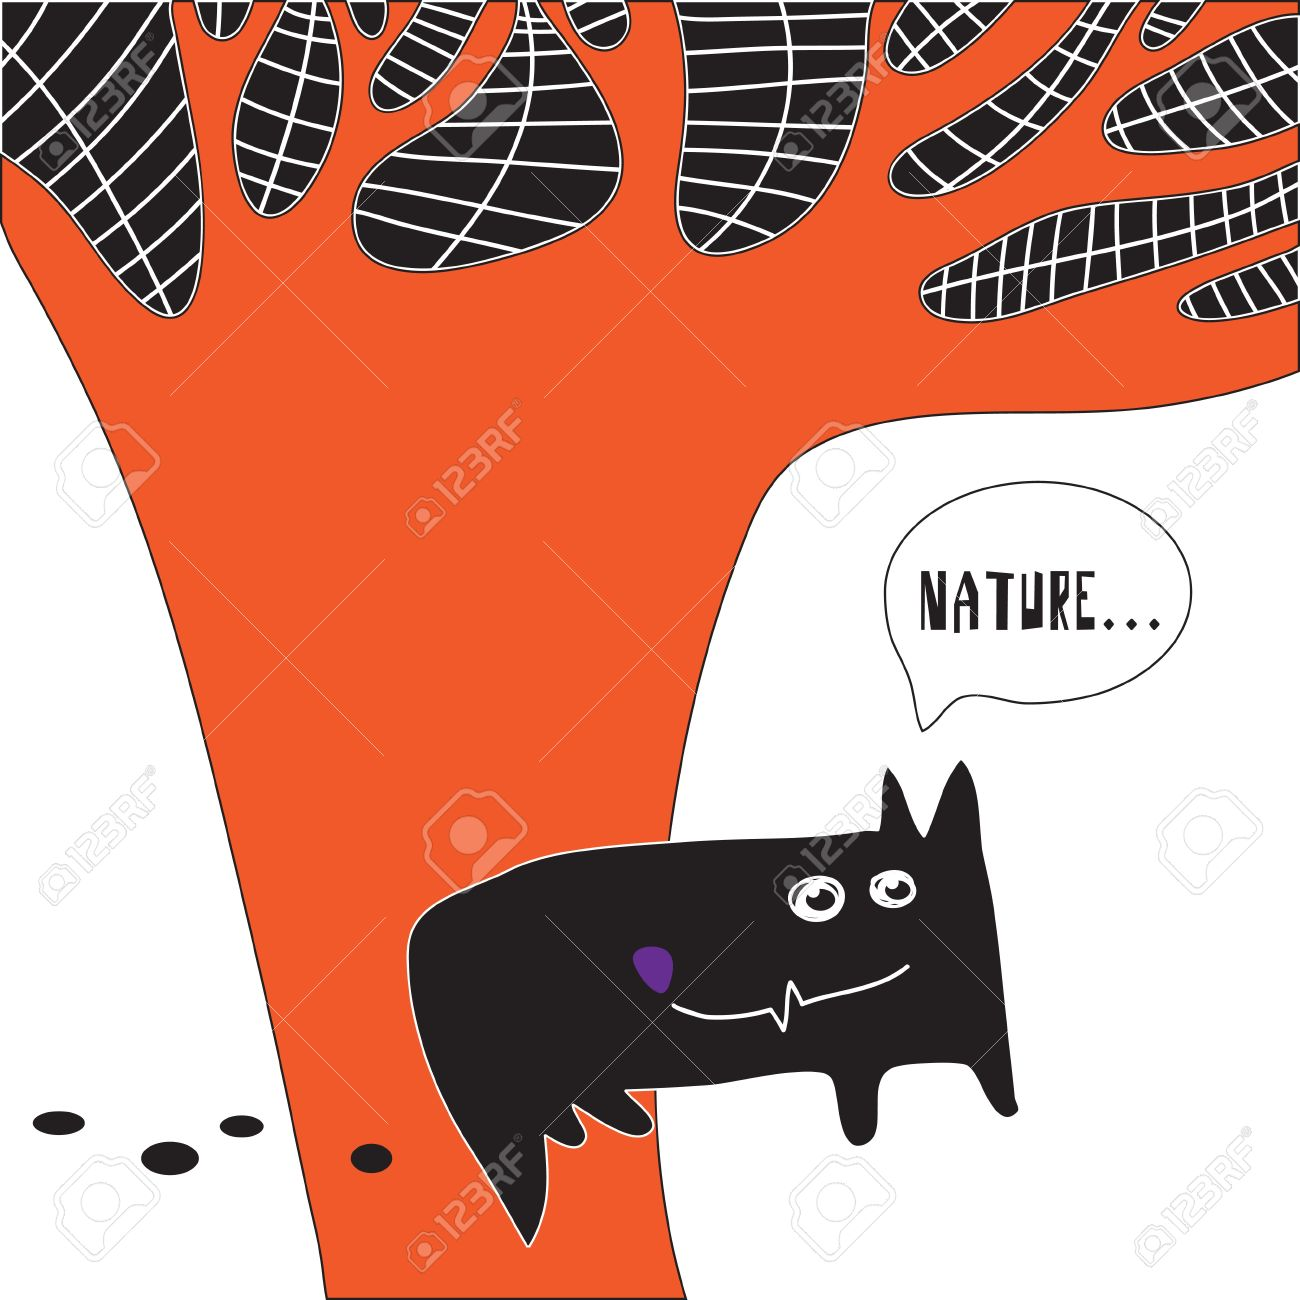 Clipart of a wolf against a tree picture free stock Abstract Image Silhouette Drawing Wolf Against The Tree Royalty ... picture free stock